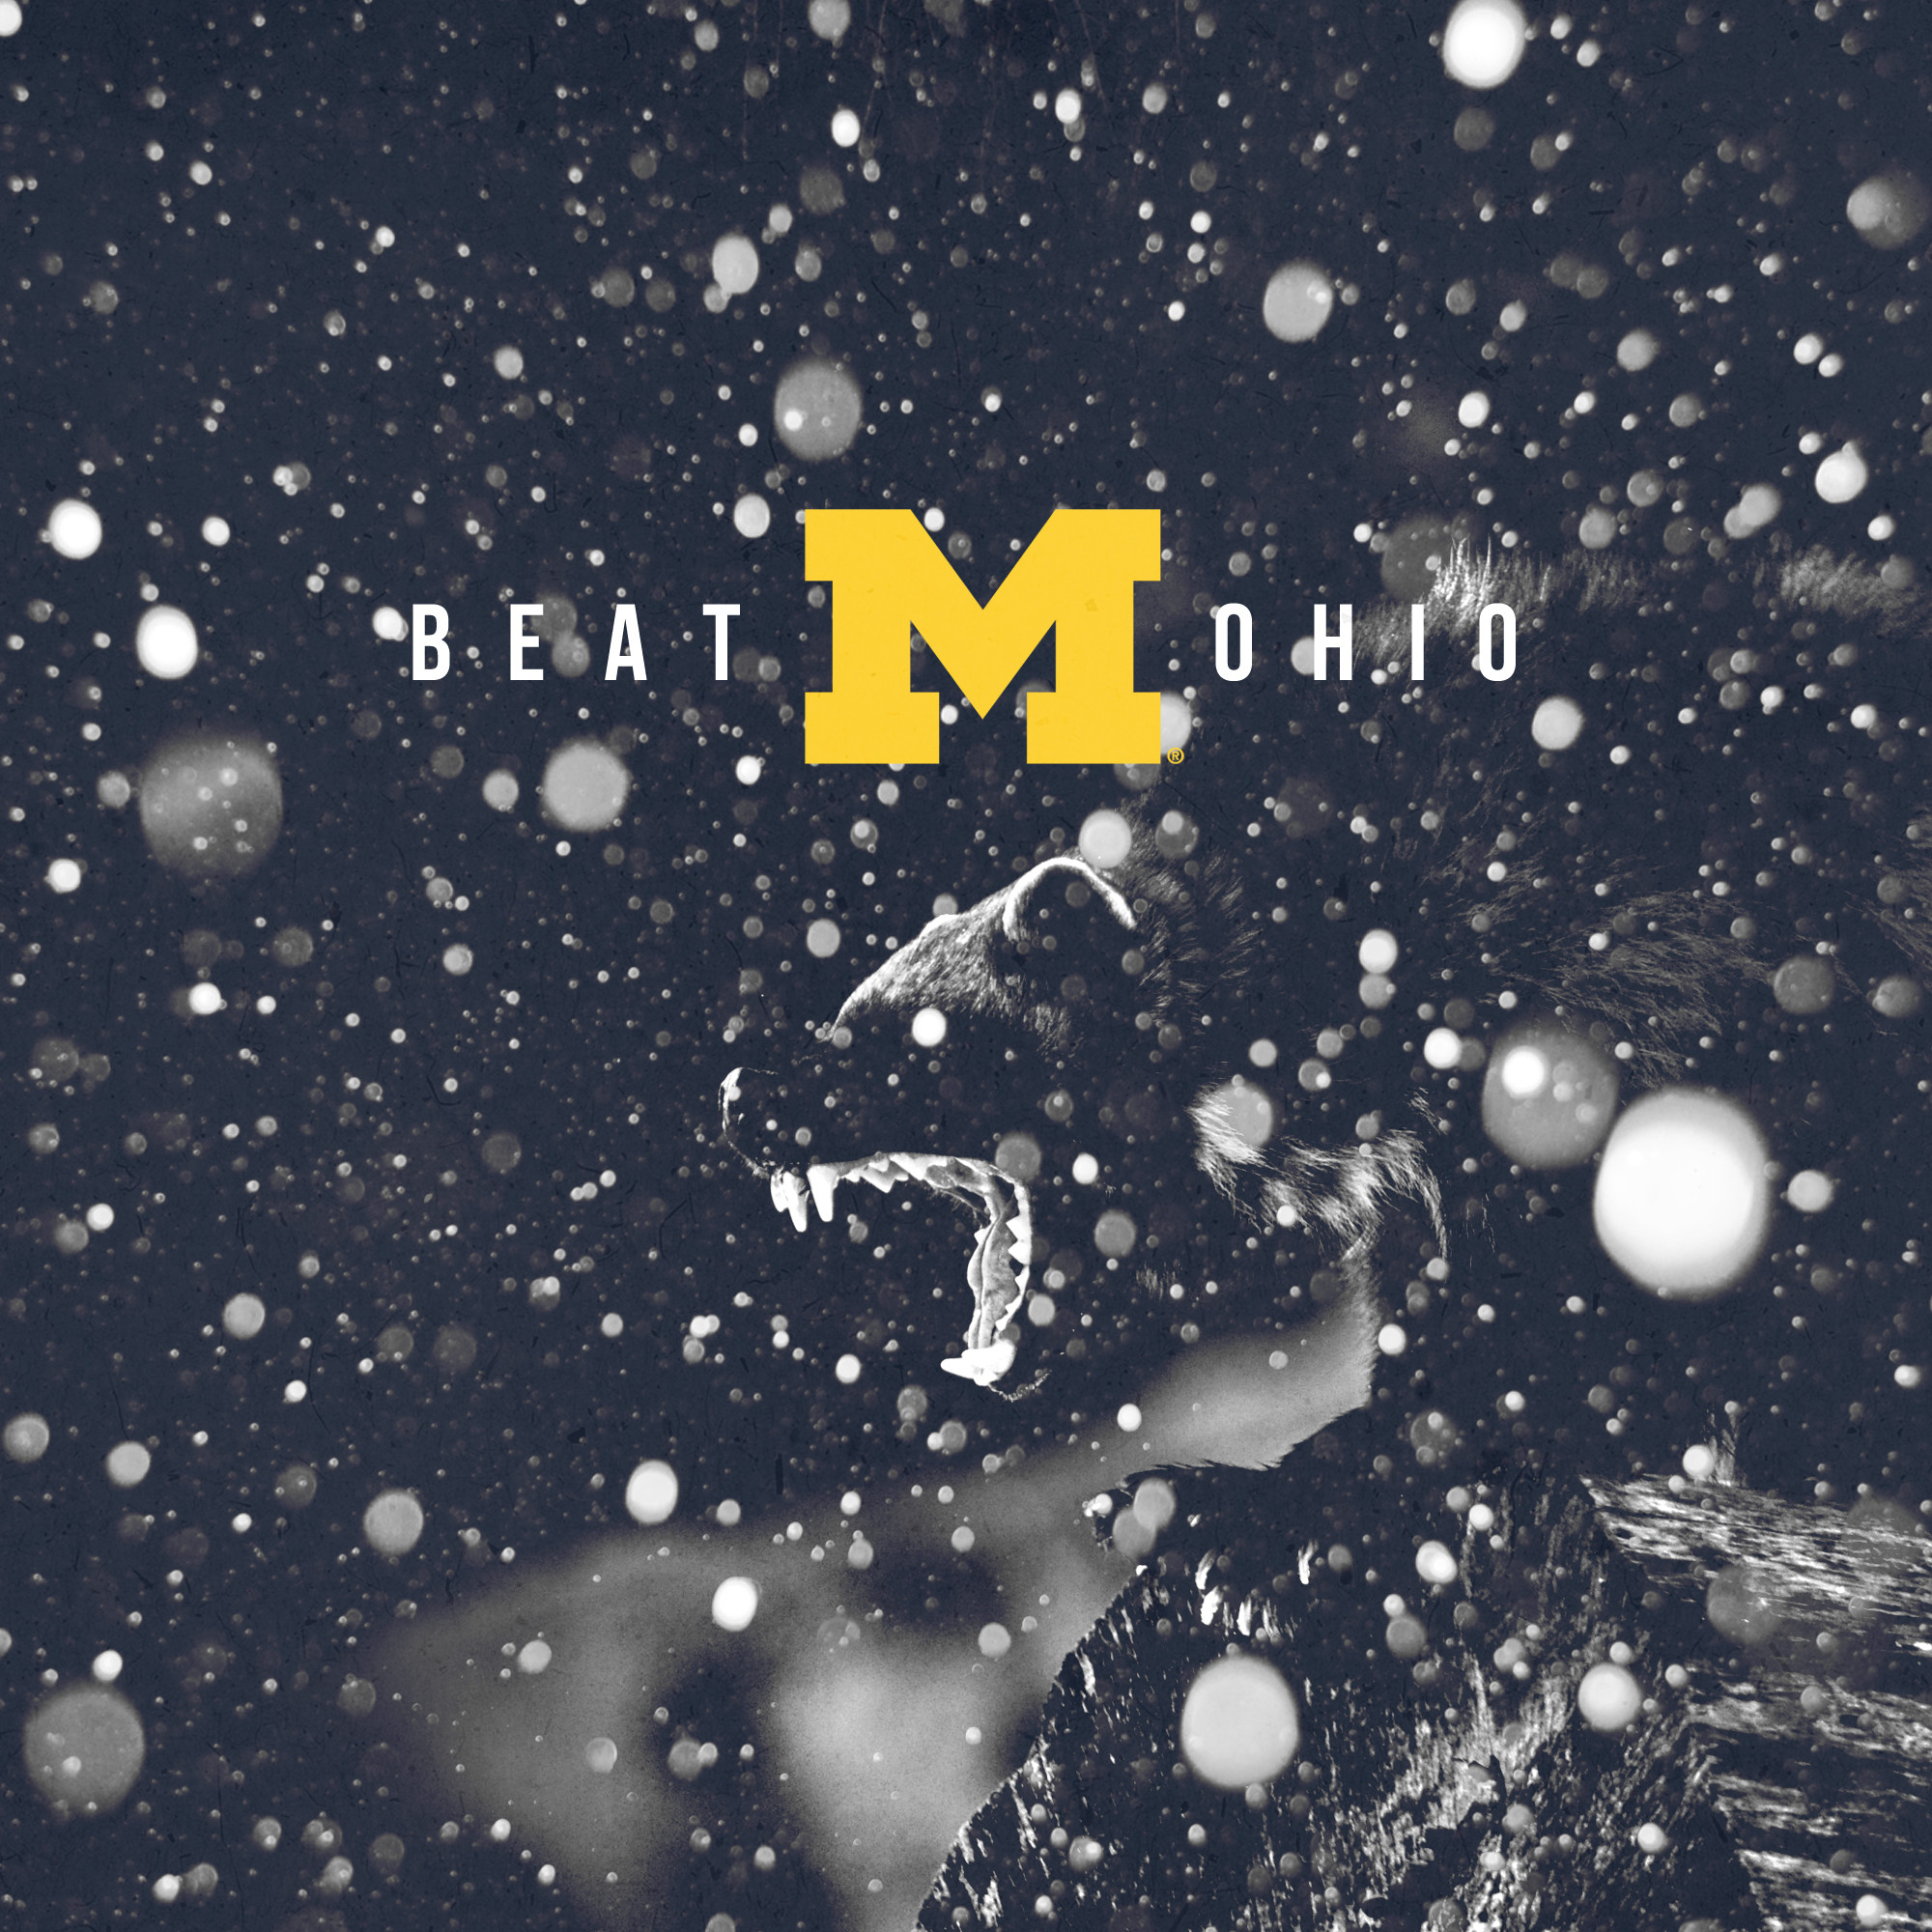 2000x2000 Go Blue - Beat Ohio - square format